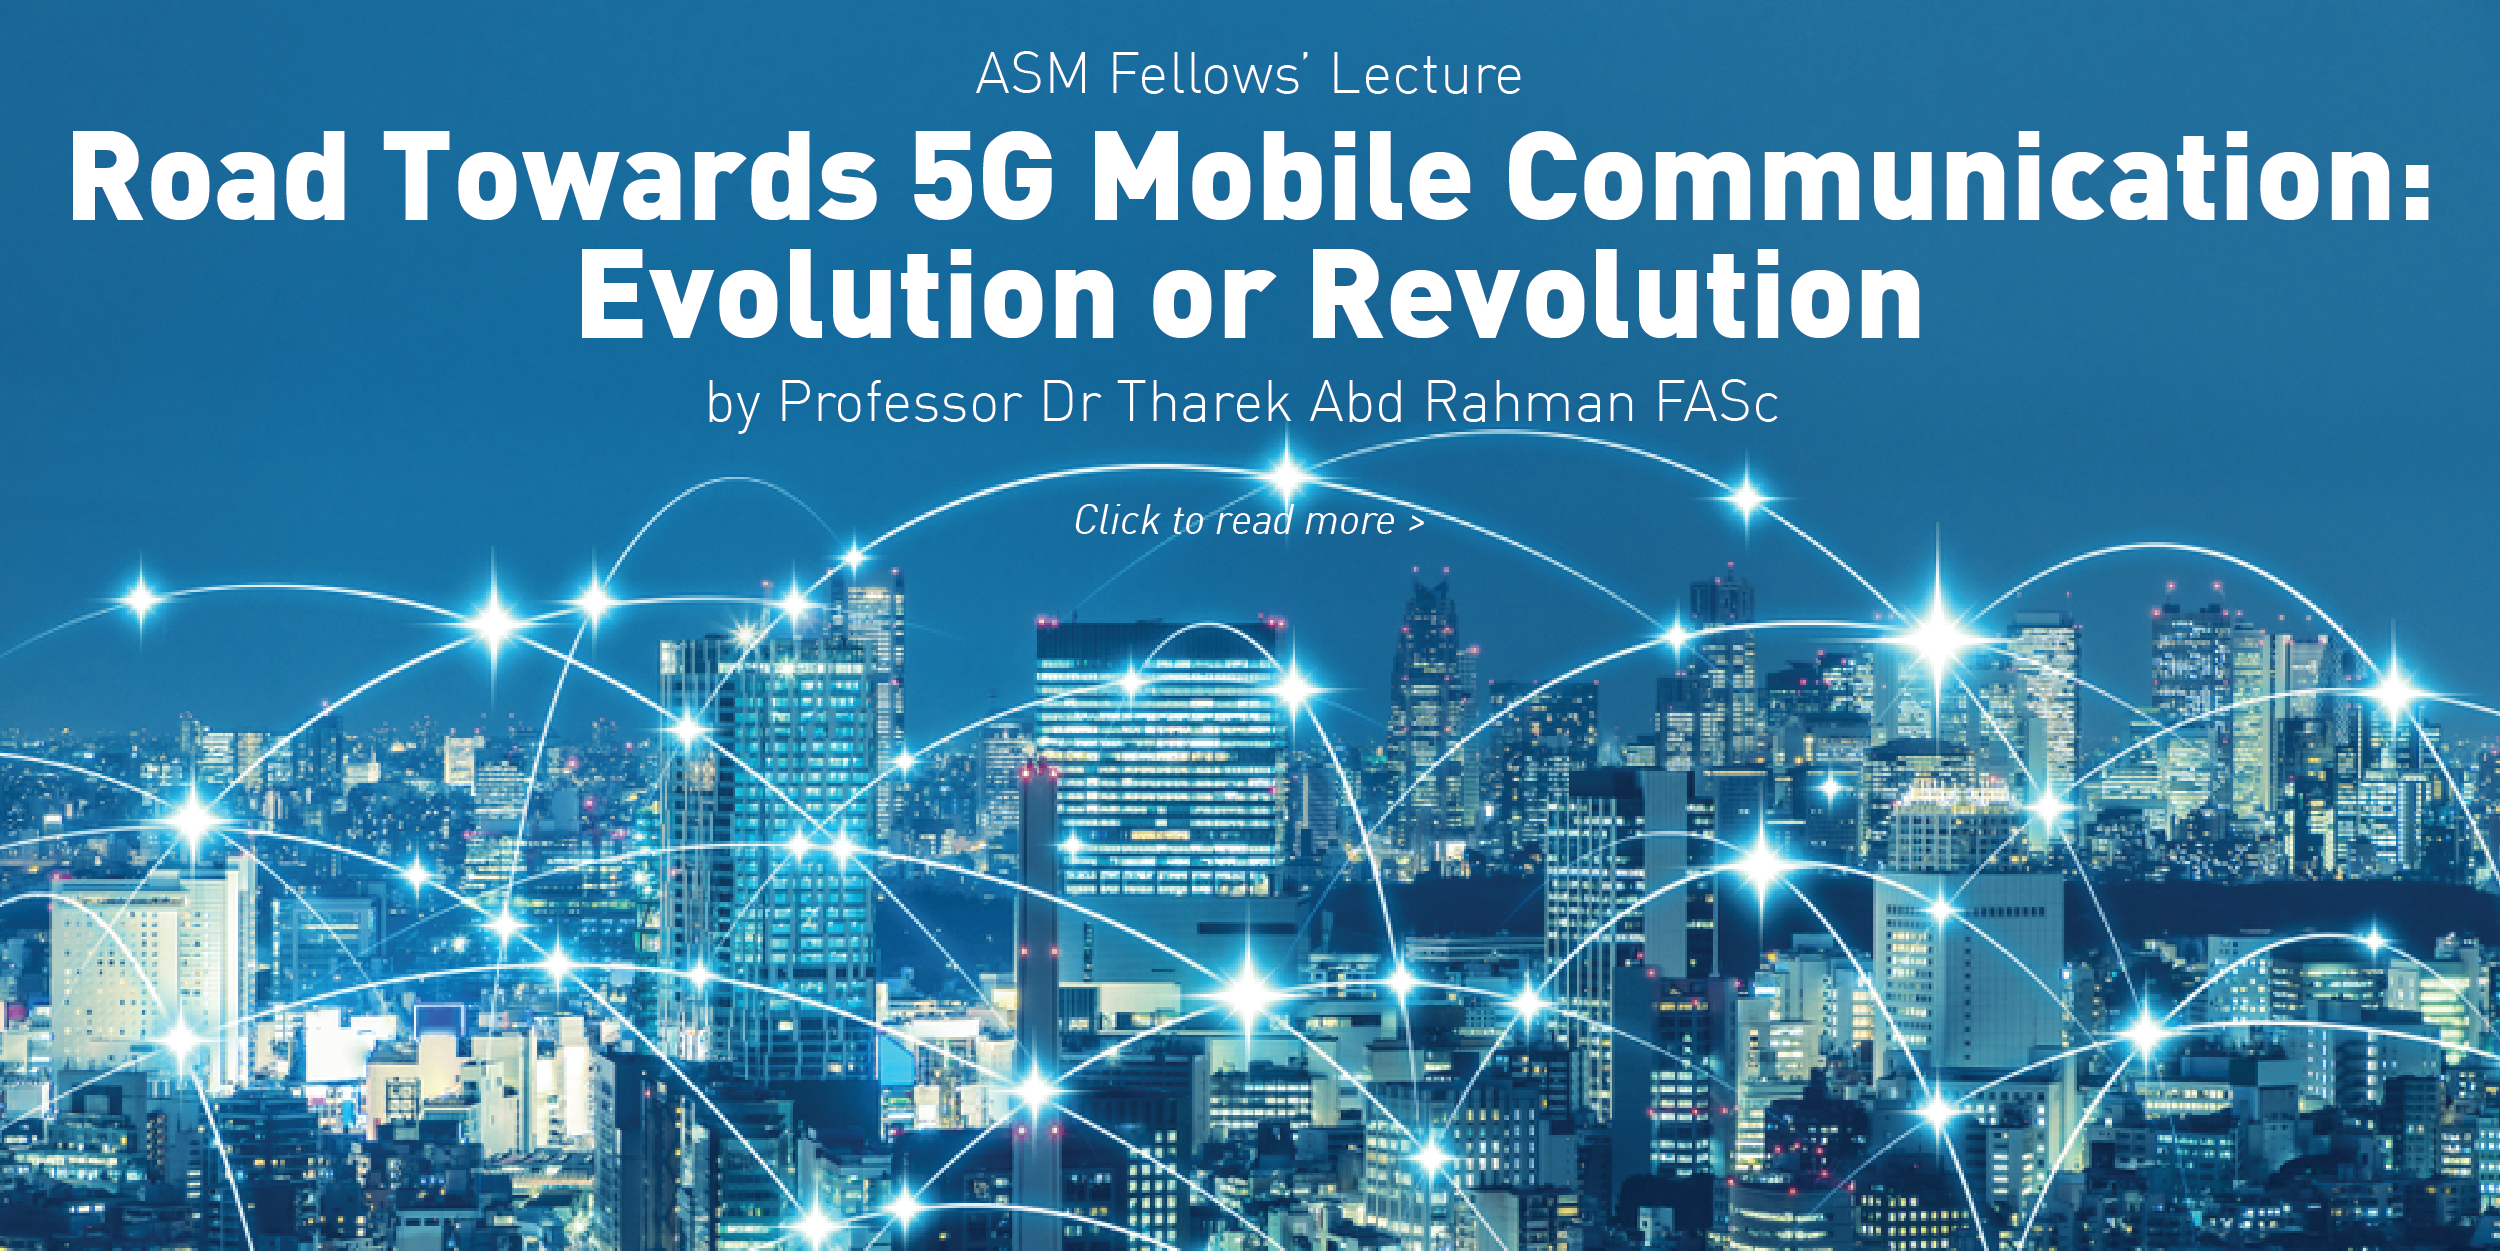 ASM Fellows' Lecture: Road Towards 5G Mobile Communication